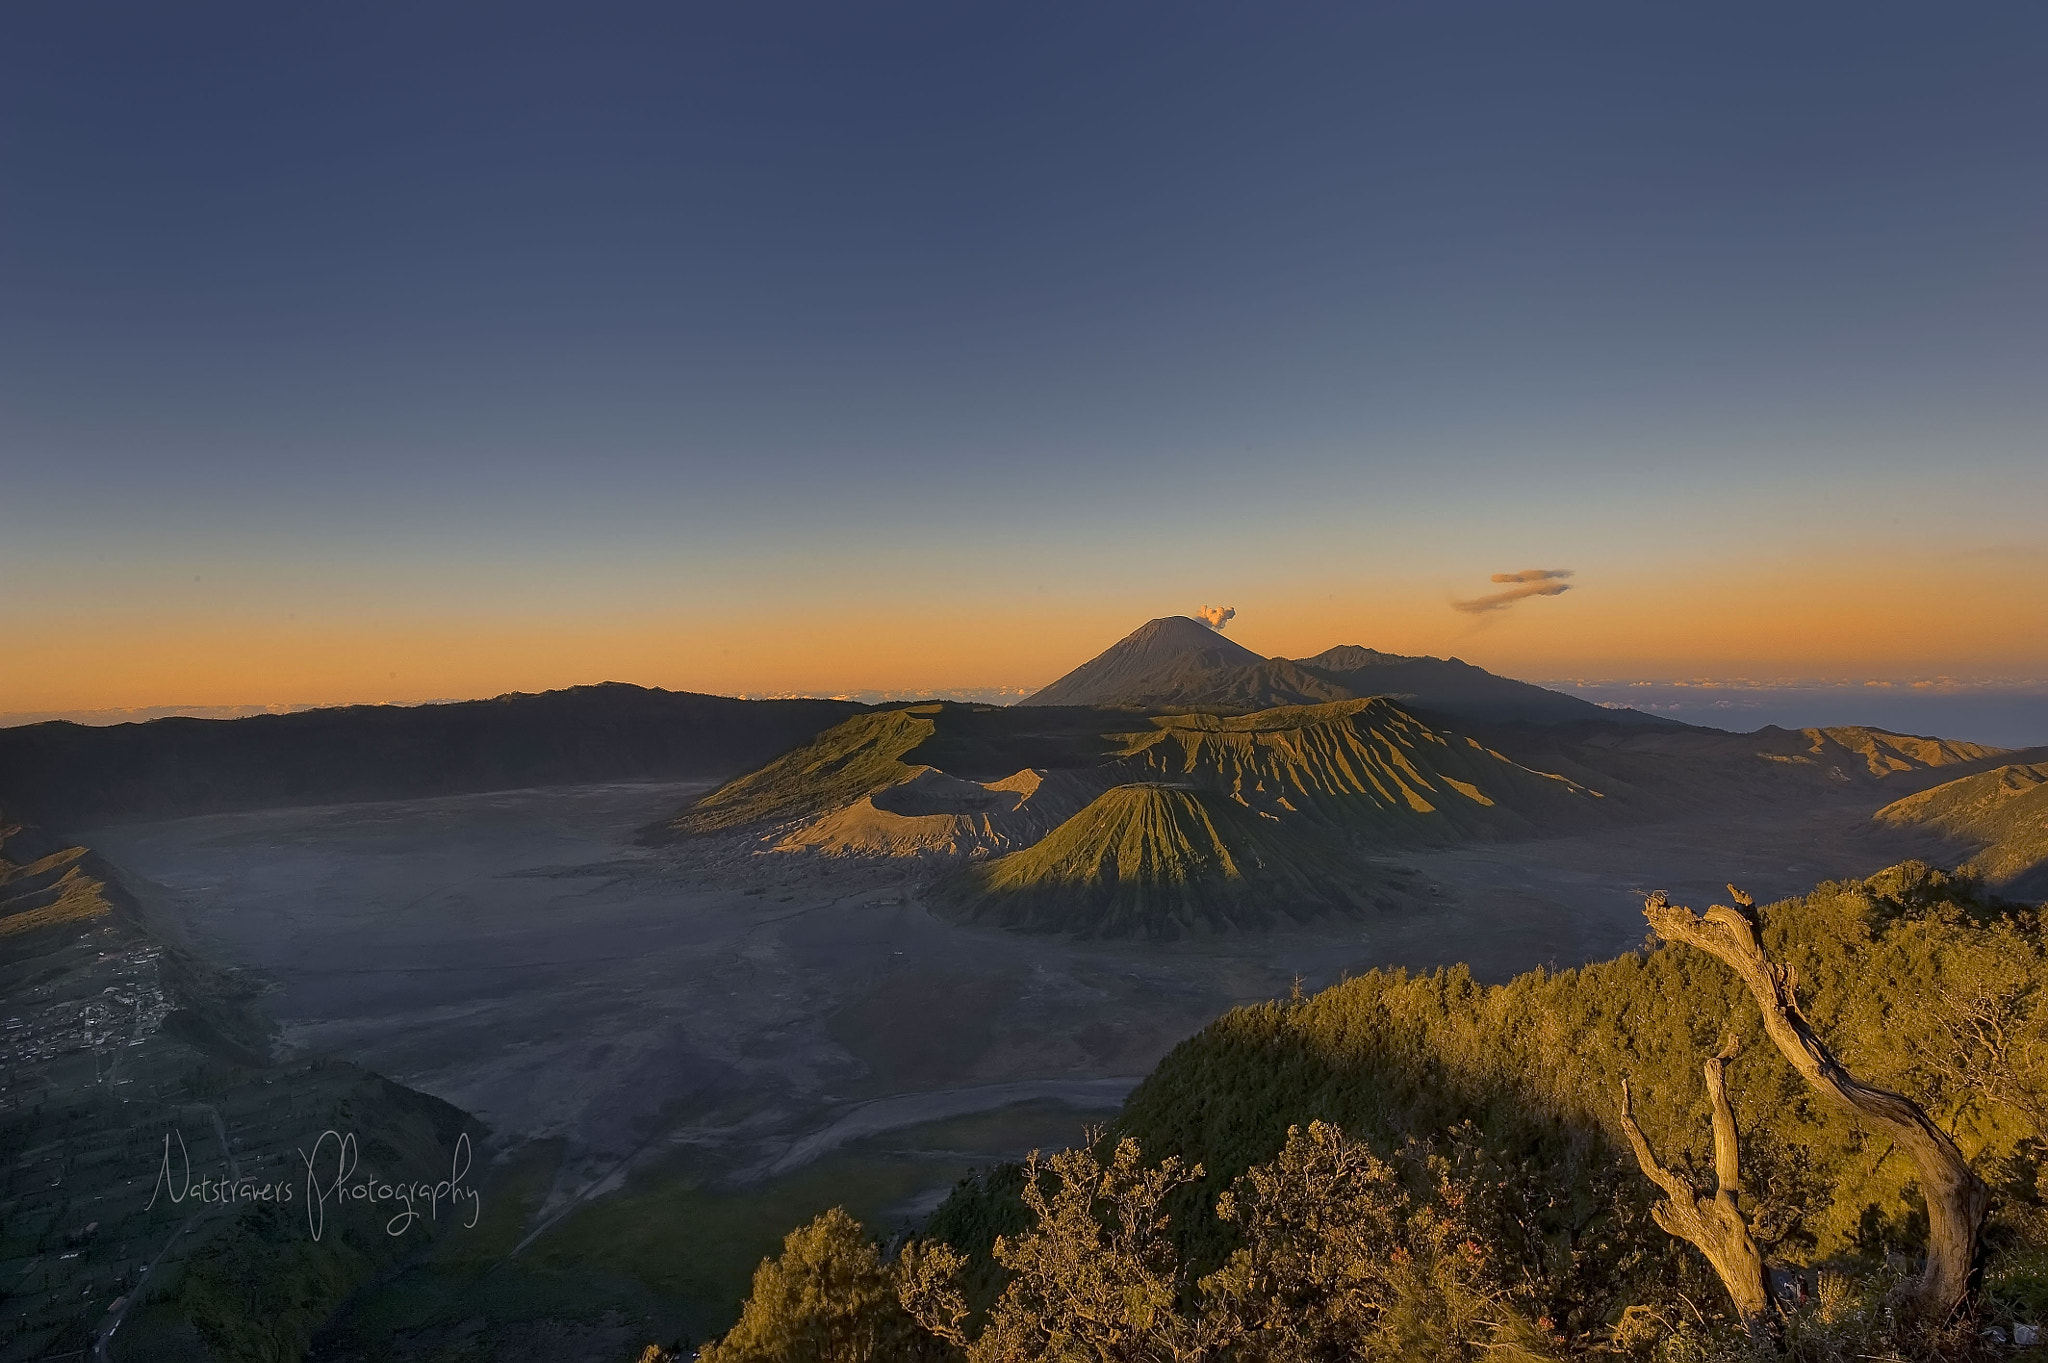 Photograph Sunrise at Mount Bromo by Nathalie Stravers on 500px